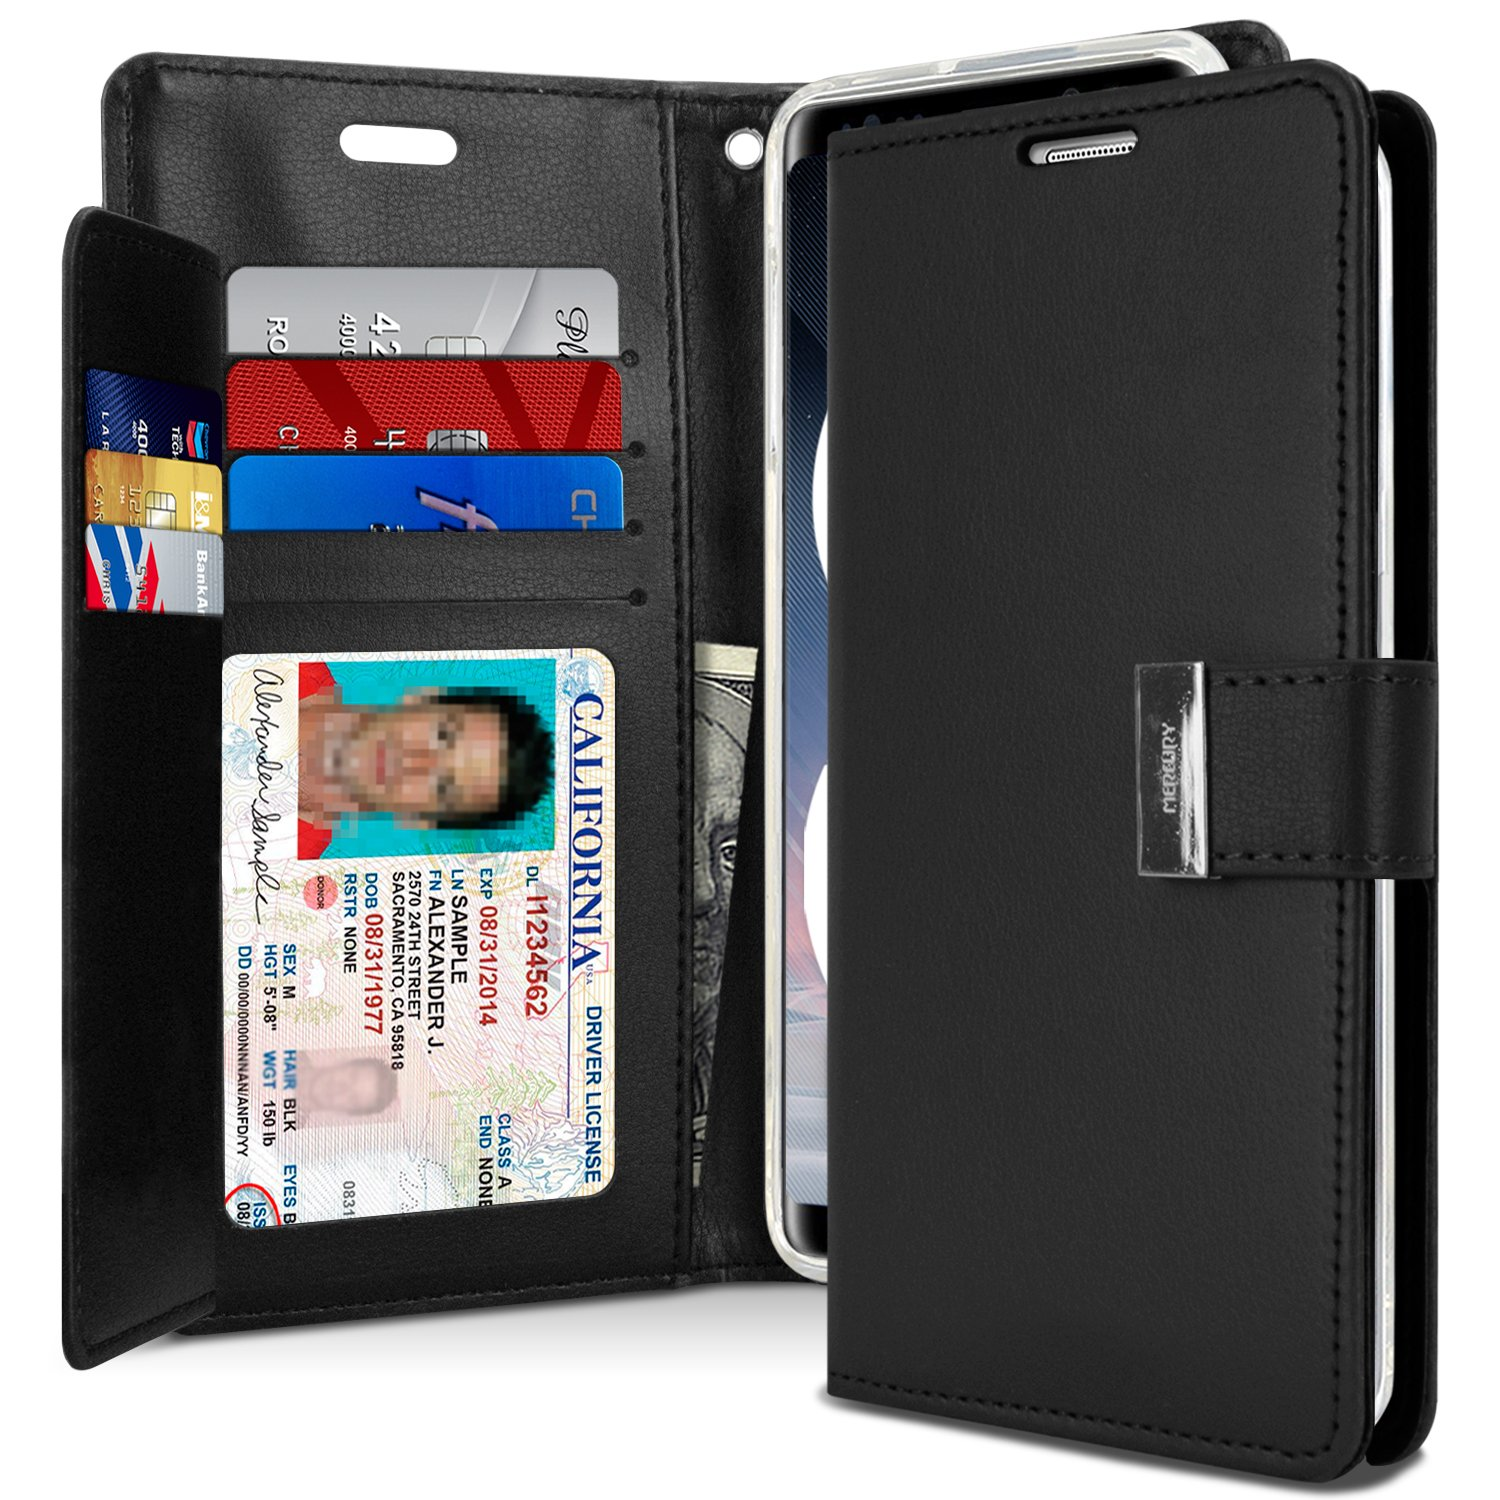 Galaxy Note 8 Case Drop Protection Goospery Rich Samsung S6 Canvas Diary Navy Wallet Premium Soft Synthetic Leather Id Card Cash Slot Cover For